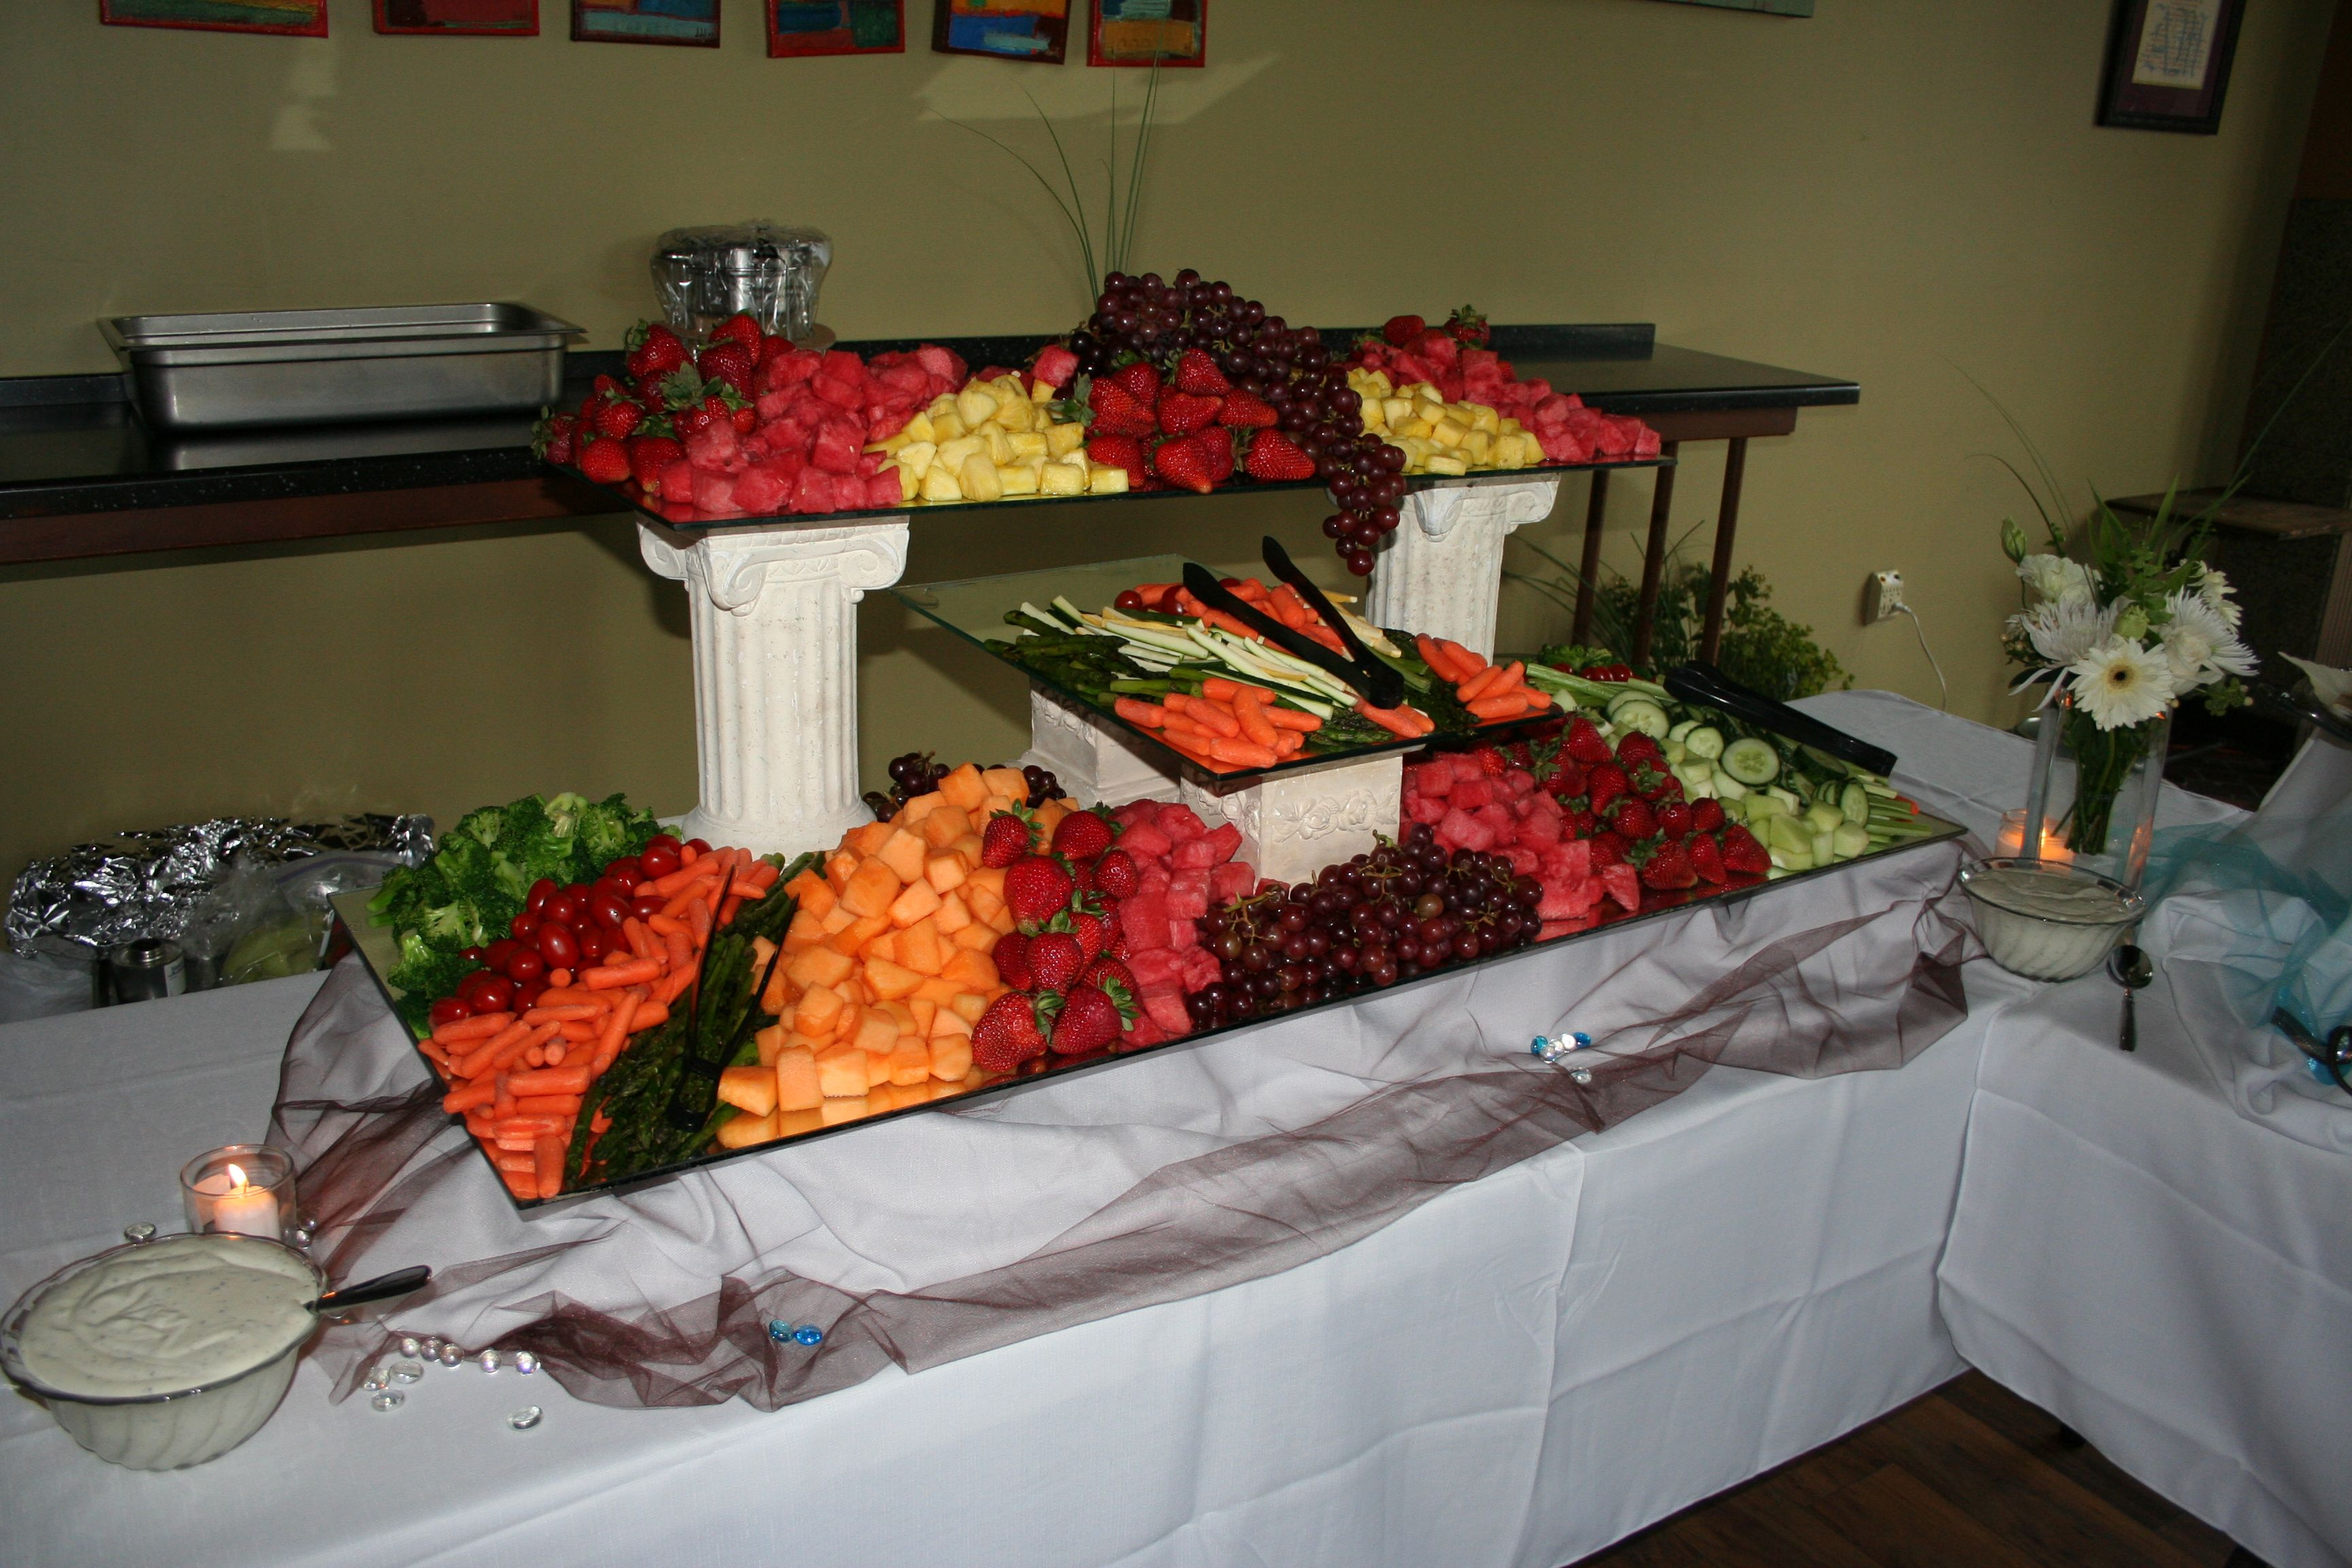 Waterfall Fruit And Veggie Displays: Fruit And Vegetable Display!